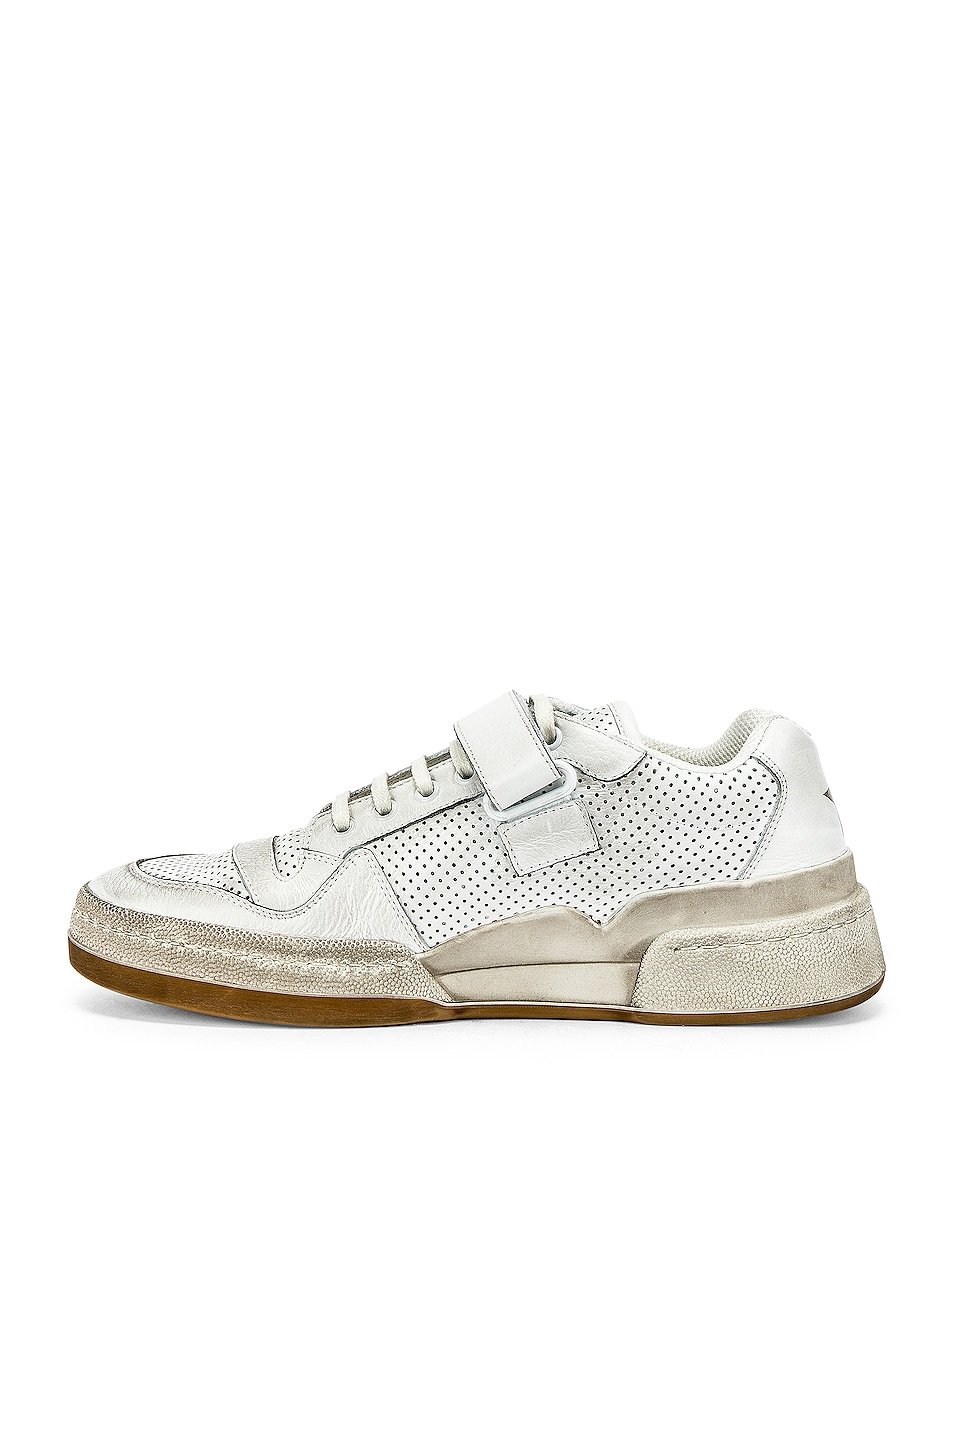 Image 5 of Saint Laurent Jeddo Low Tops in White